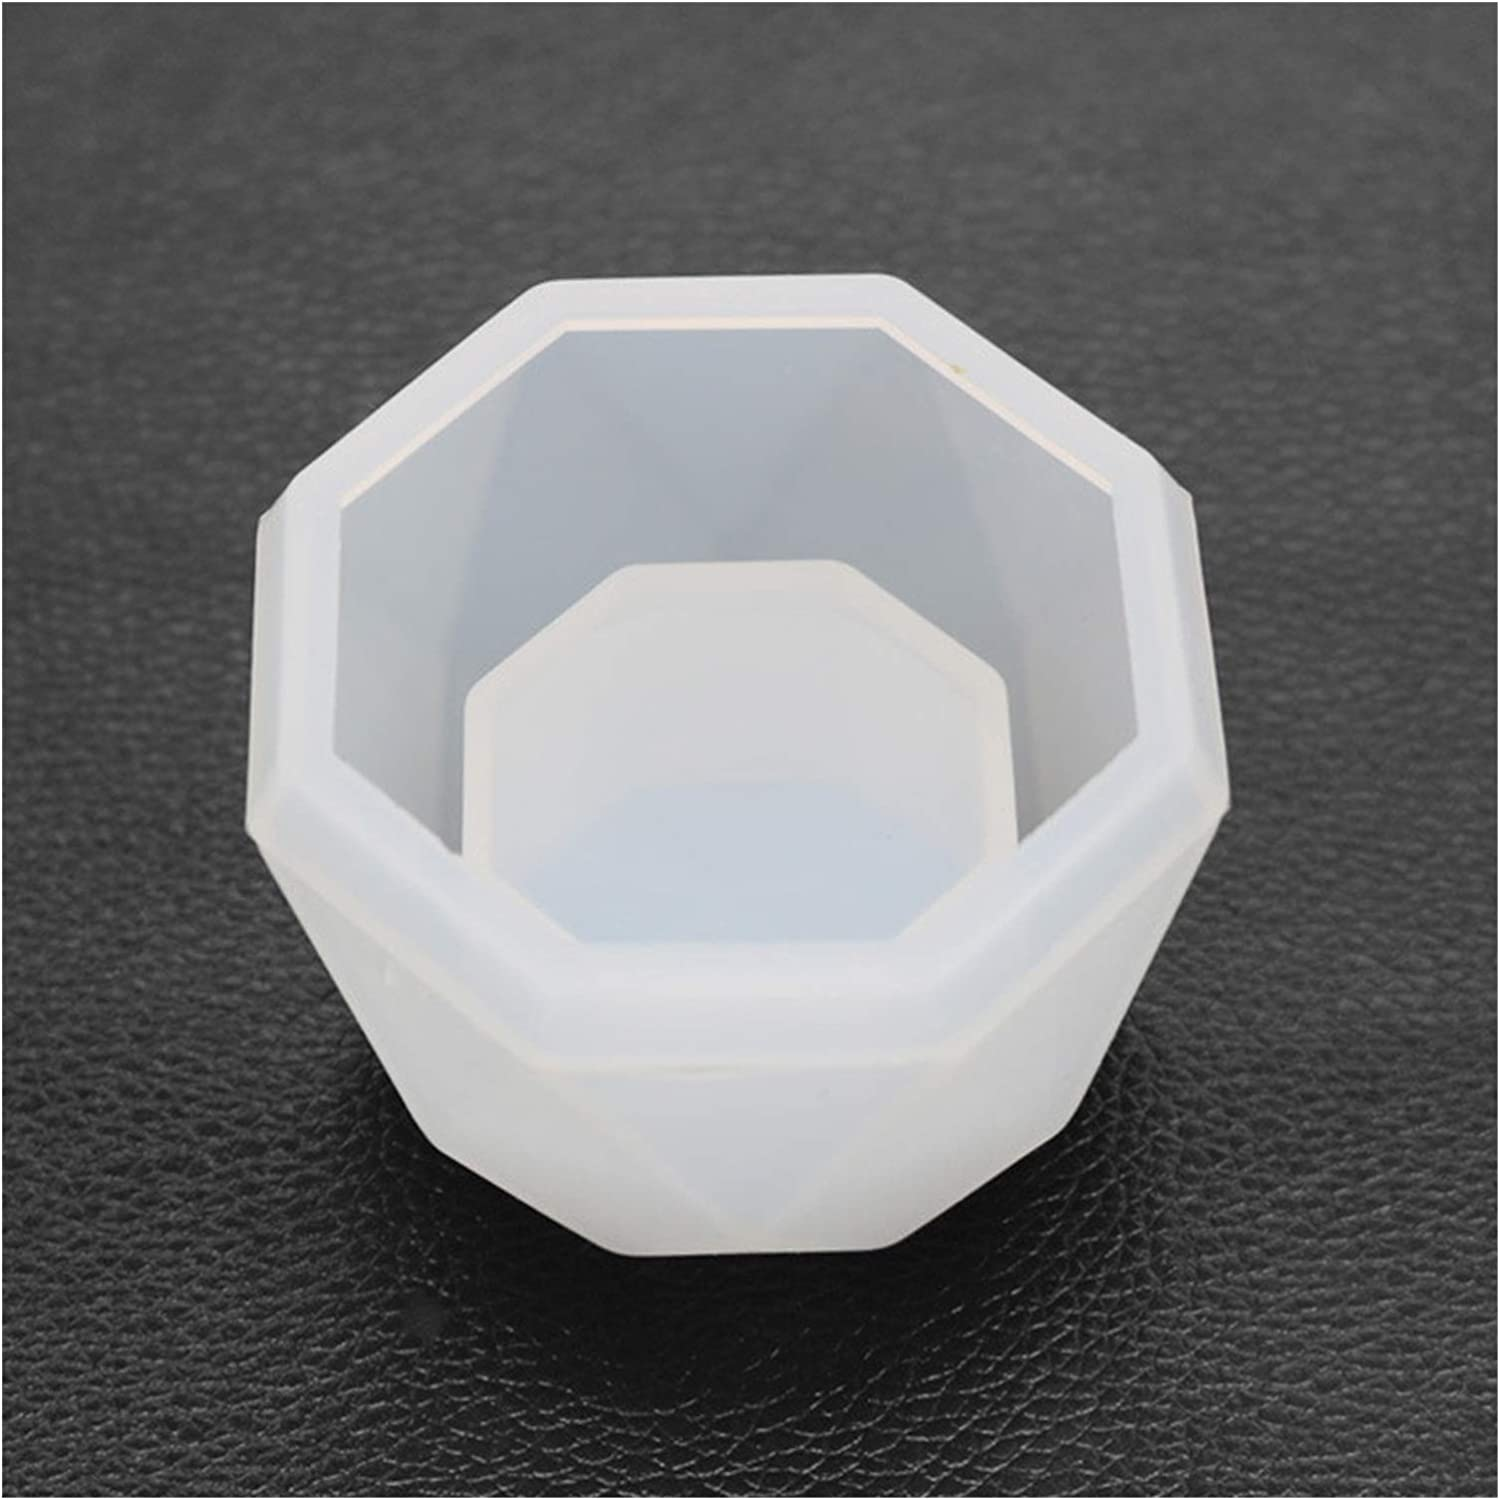 JUNMAIDZ Resin New popularity Molds DIY Silicone Flower Mold Now free shipping C Pot Modeling Art